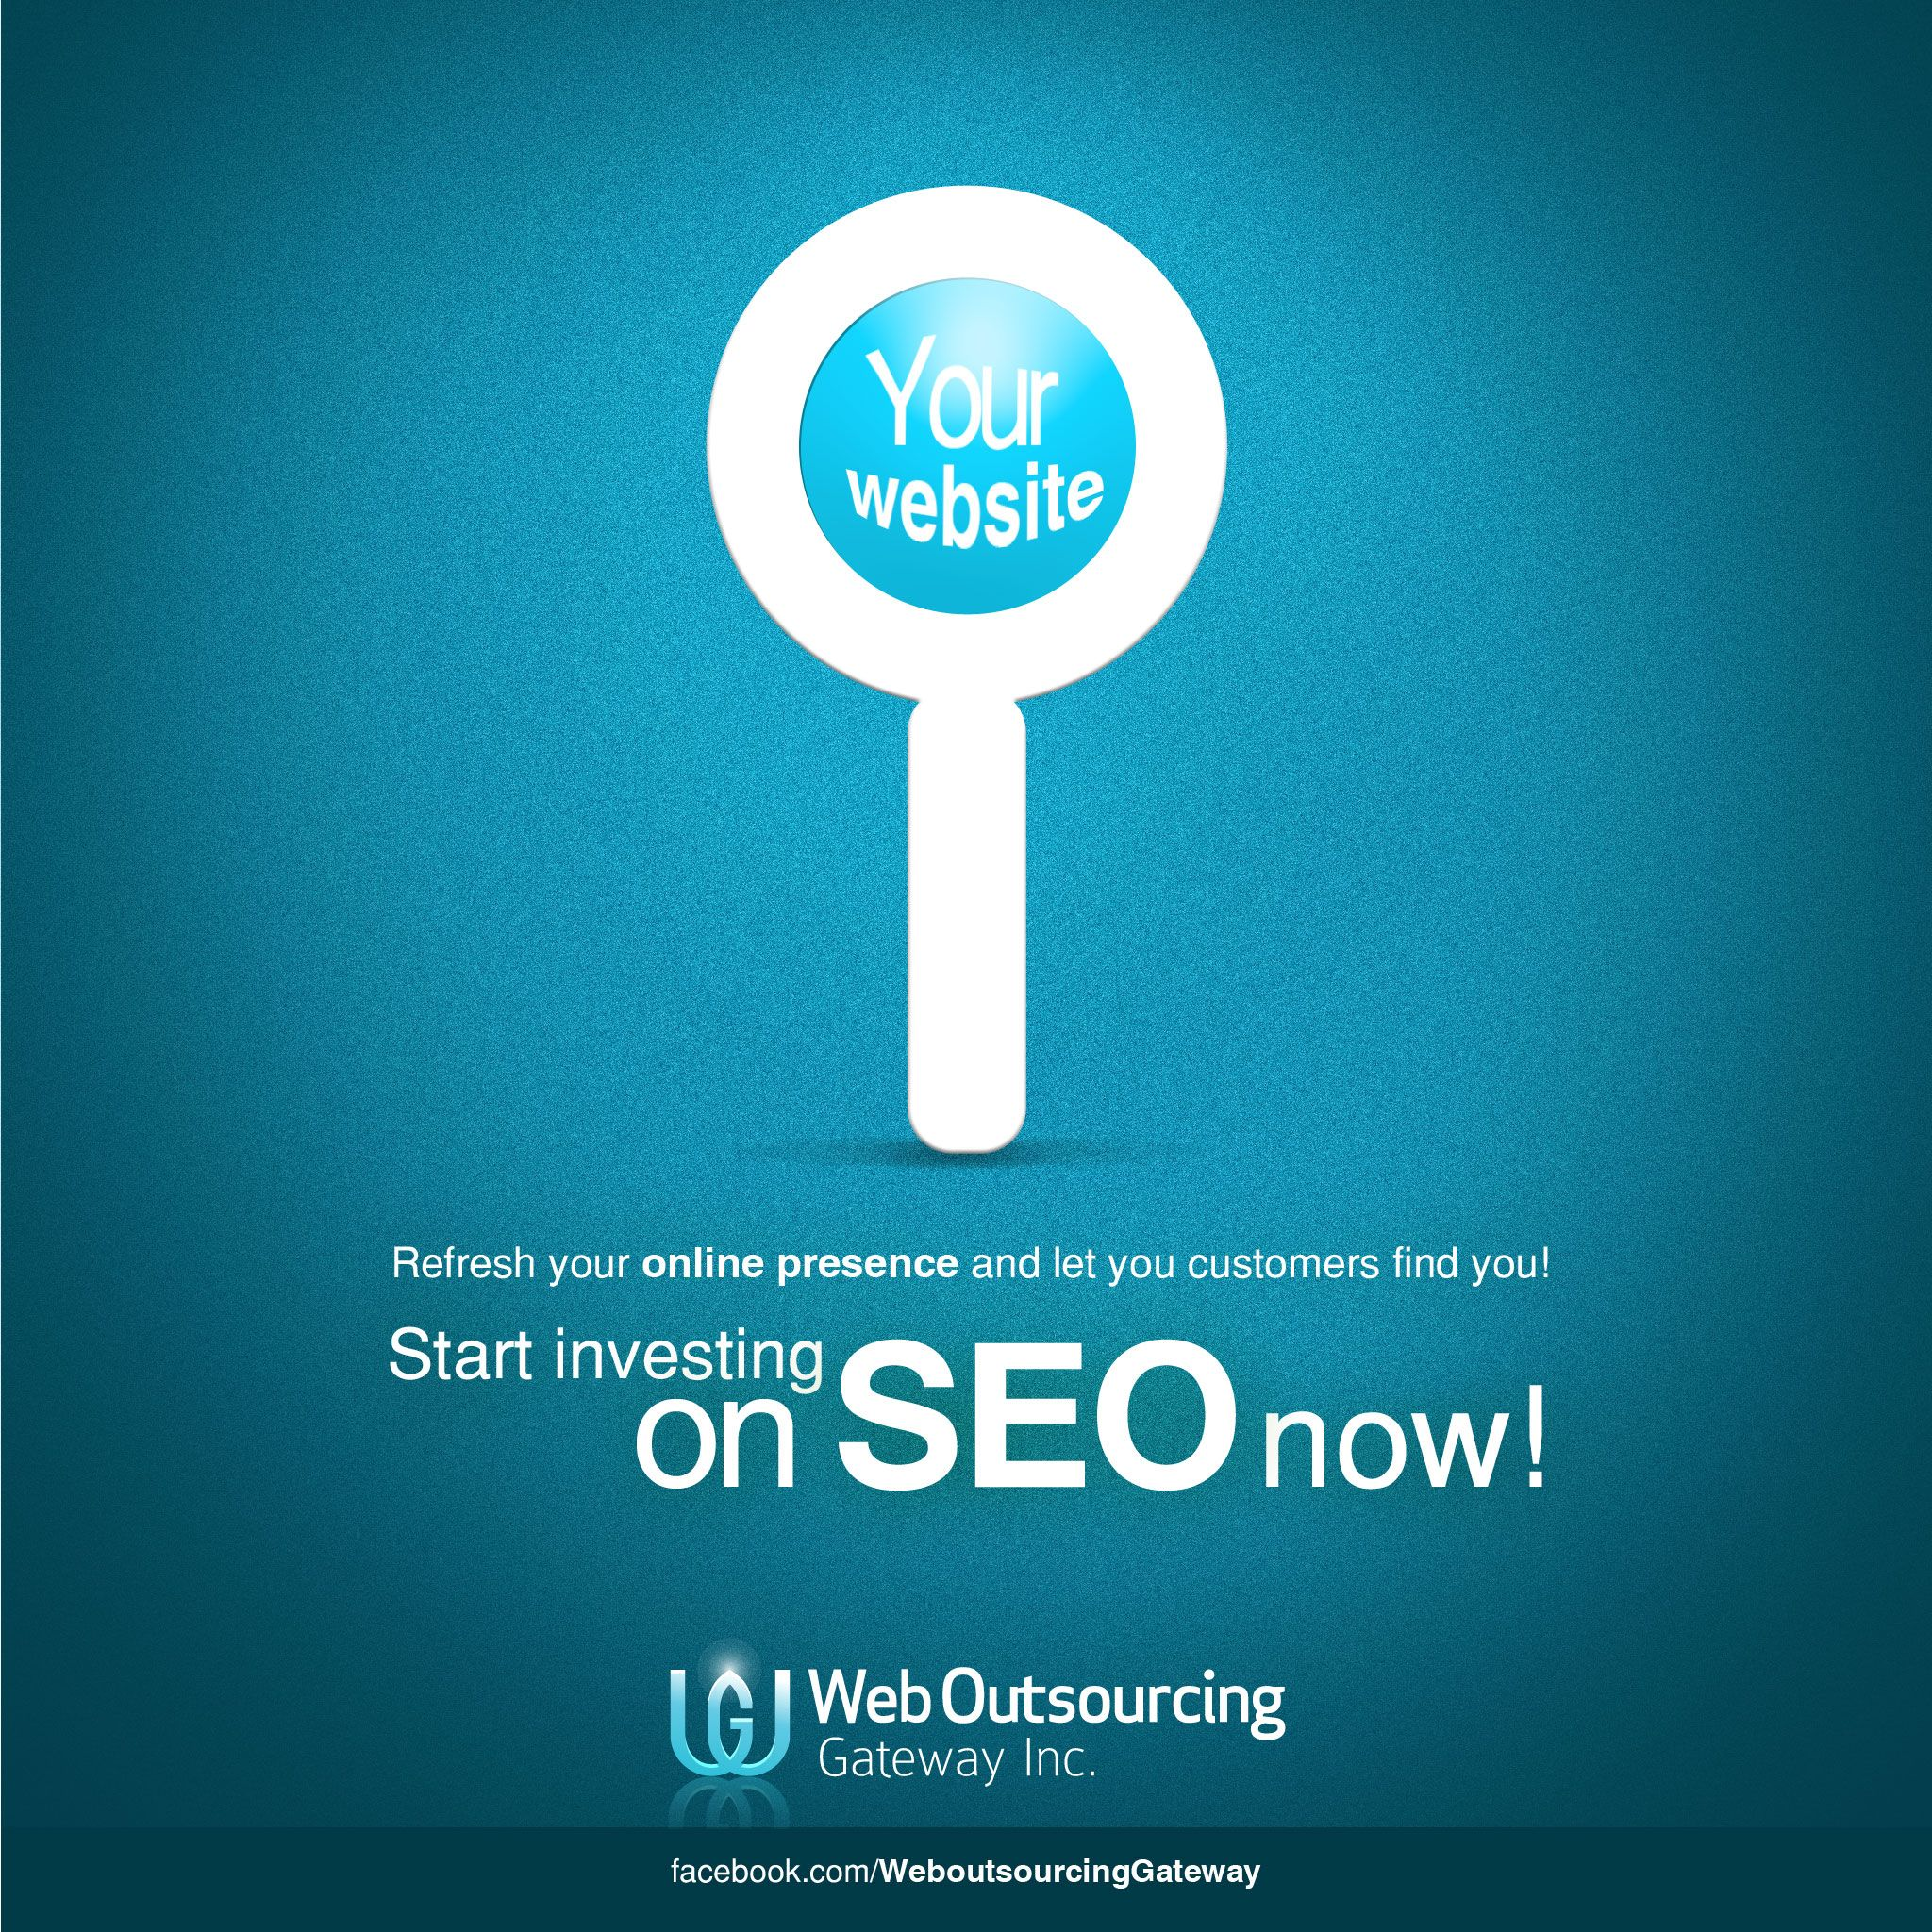 Want to earn Traffic without hassle? Or be optimized by search engine? Nothing to worry because we do provide the best SEO service. So what are you waiting for? Inquire now! http://weboutsourcing-gateway.com/  #SEO #Webdevelopment